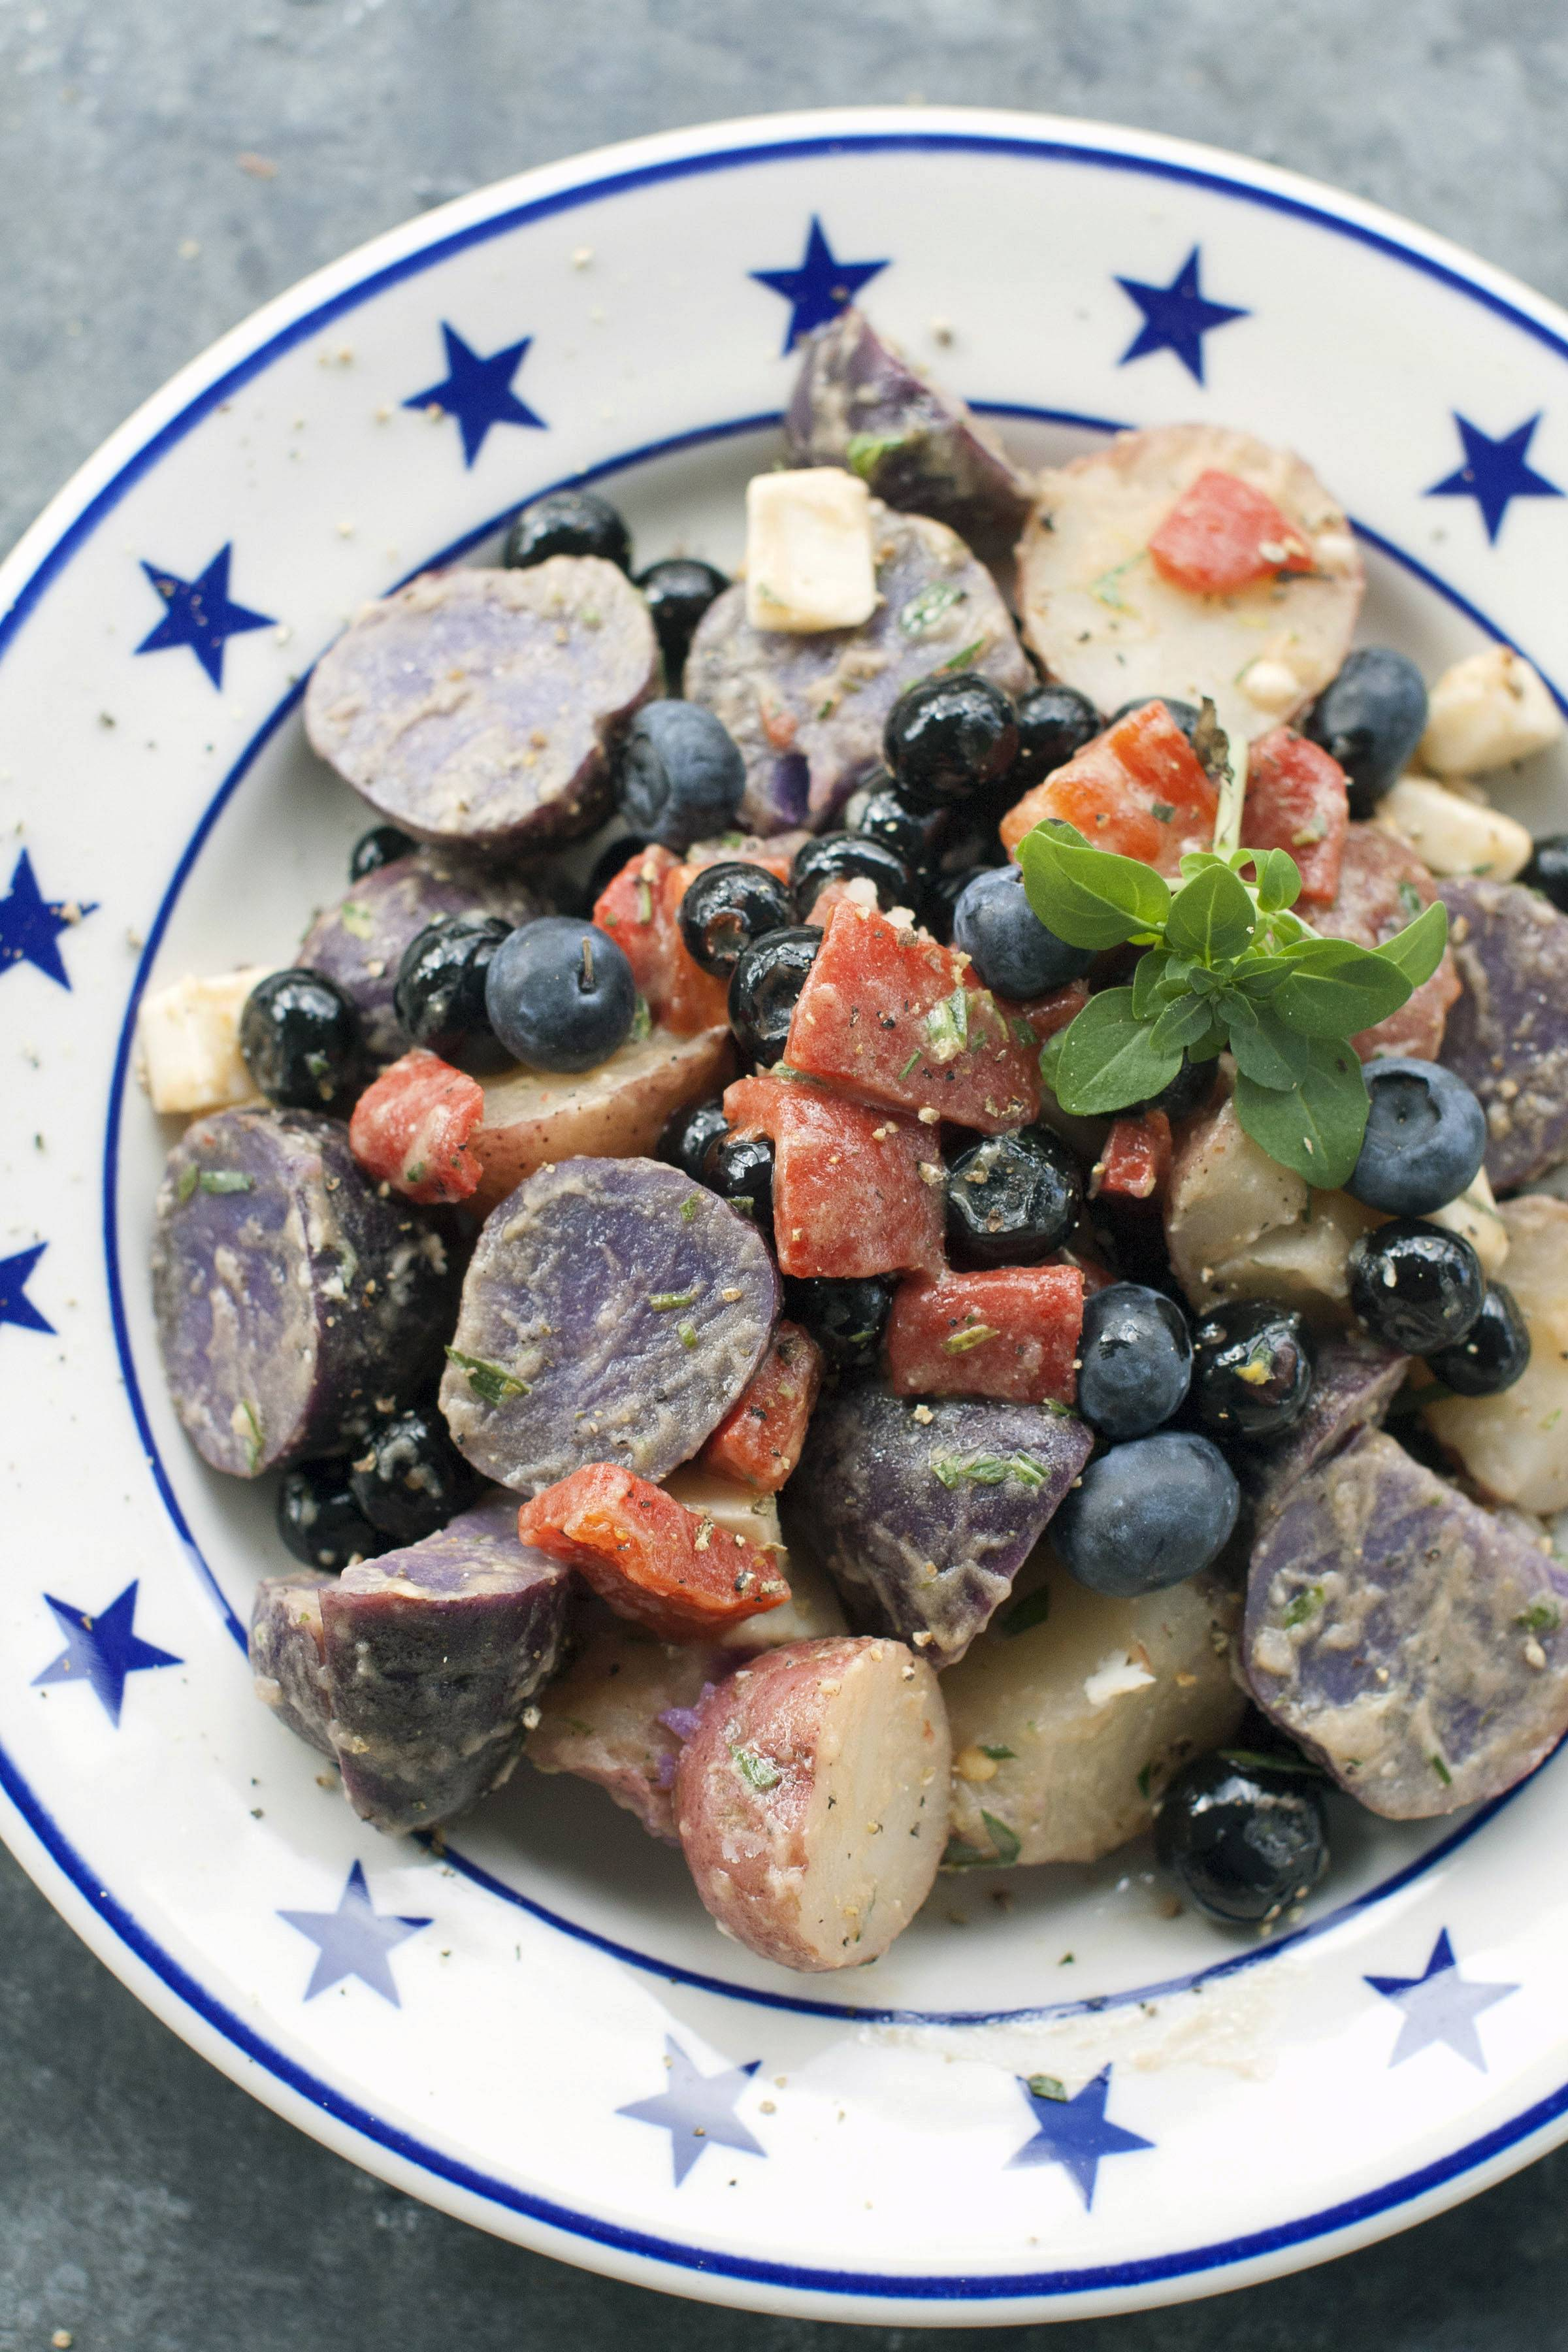 A potato salad with a patriotic -- and tasty -- side